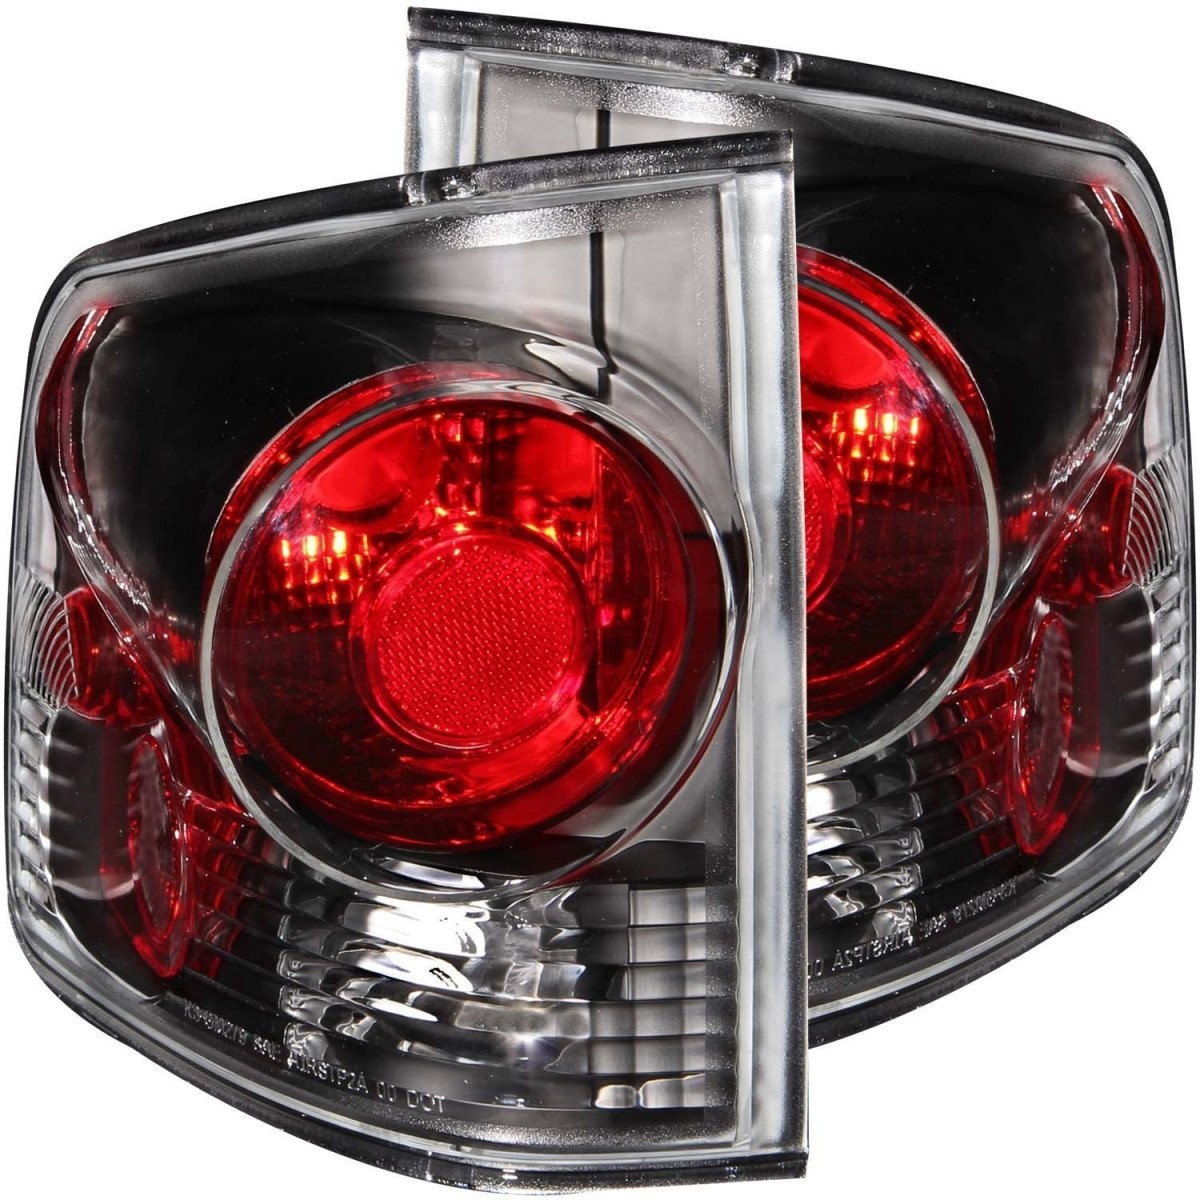 Tail Light assemblies for A 2000 Chevy S 10 Wire Tail Light Patible with Chevrolet Gmc isuzu Hombre S 10 S10 sonoma 1994 2004 Includes Left Of Tail Light assemblies for A 2000 Chevy S 10 Wire